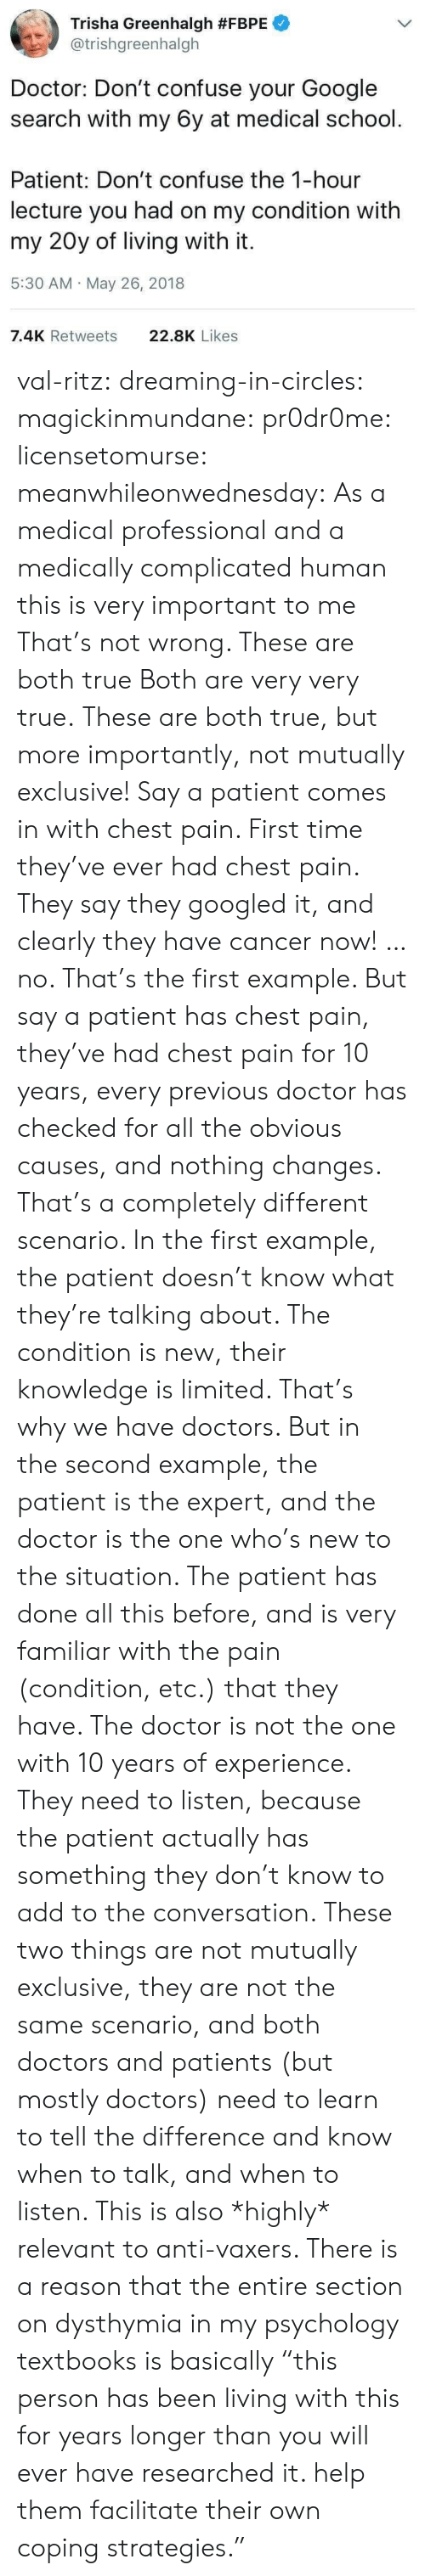 """Know When: Trisha Greenhalgh #FBPE  @trishgreenhalgh  Doctor: Don't confuse your Google  search with my 6y at medical school.  Patient: Don't confuse the 1-hour  lecture you had on my condition with  my 20y of living with it.  5:30 AM May 26, 2018  7.4K Retweets  22.8K Likes val-ritz:  dreaming-in-circles:  magickinmundane:  pr0dr0me:   licensetomurse:   meanwhileonwednesday: As a medical professional and a medically complicated human this is very important to me That's not wrong.    These are both true   Both are very very true.   These are both true, but more importantly, not mutually exclusive!  Say a patient comes in with chest pain. First time they've ever had chest pain. They say they googled it, and clearly they have cancer now! …no. That's the first example.  But say a patient has chest pain, they've had chest pain for 10 years, every previous doctor has checked for all the obvious causes, and nothing changes.  That's a completely different scenario. In the first example, the patient doesn't know what they're talking about. The condition is new, their knowledge is limited. That's why we have doctors. But in the second example, the patient is the expert, and the doctor is the one who's new to the situation. The patient has done all this before, and is very familiar with the pain (condition, etc.) that they have. The doctor is not the one with 10 years of experience. They need to listen, because the patient actually has something they don't know to add to the conversation.  These two things are not mutually exclusive, they are not the same scenario, and both doctors and patients (but mostly doctors) need to learn to tell the difference and know when to talk, and when to listen.  This is also *highly* relevant to anti-vaxers.   There is a reason that the entire section on dysthymia in my psychology textbooks is basically """"this person has been living with this for years longer than you will ever have researched it. help them facilitate their own coping strategie"""